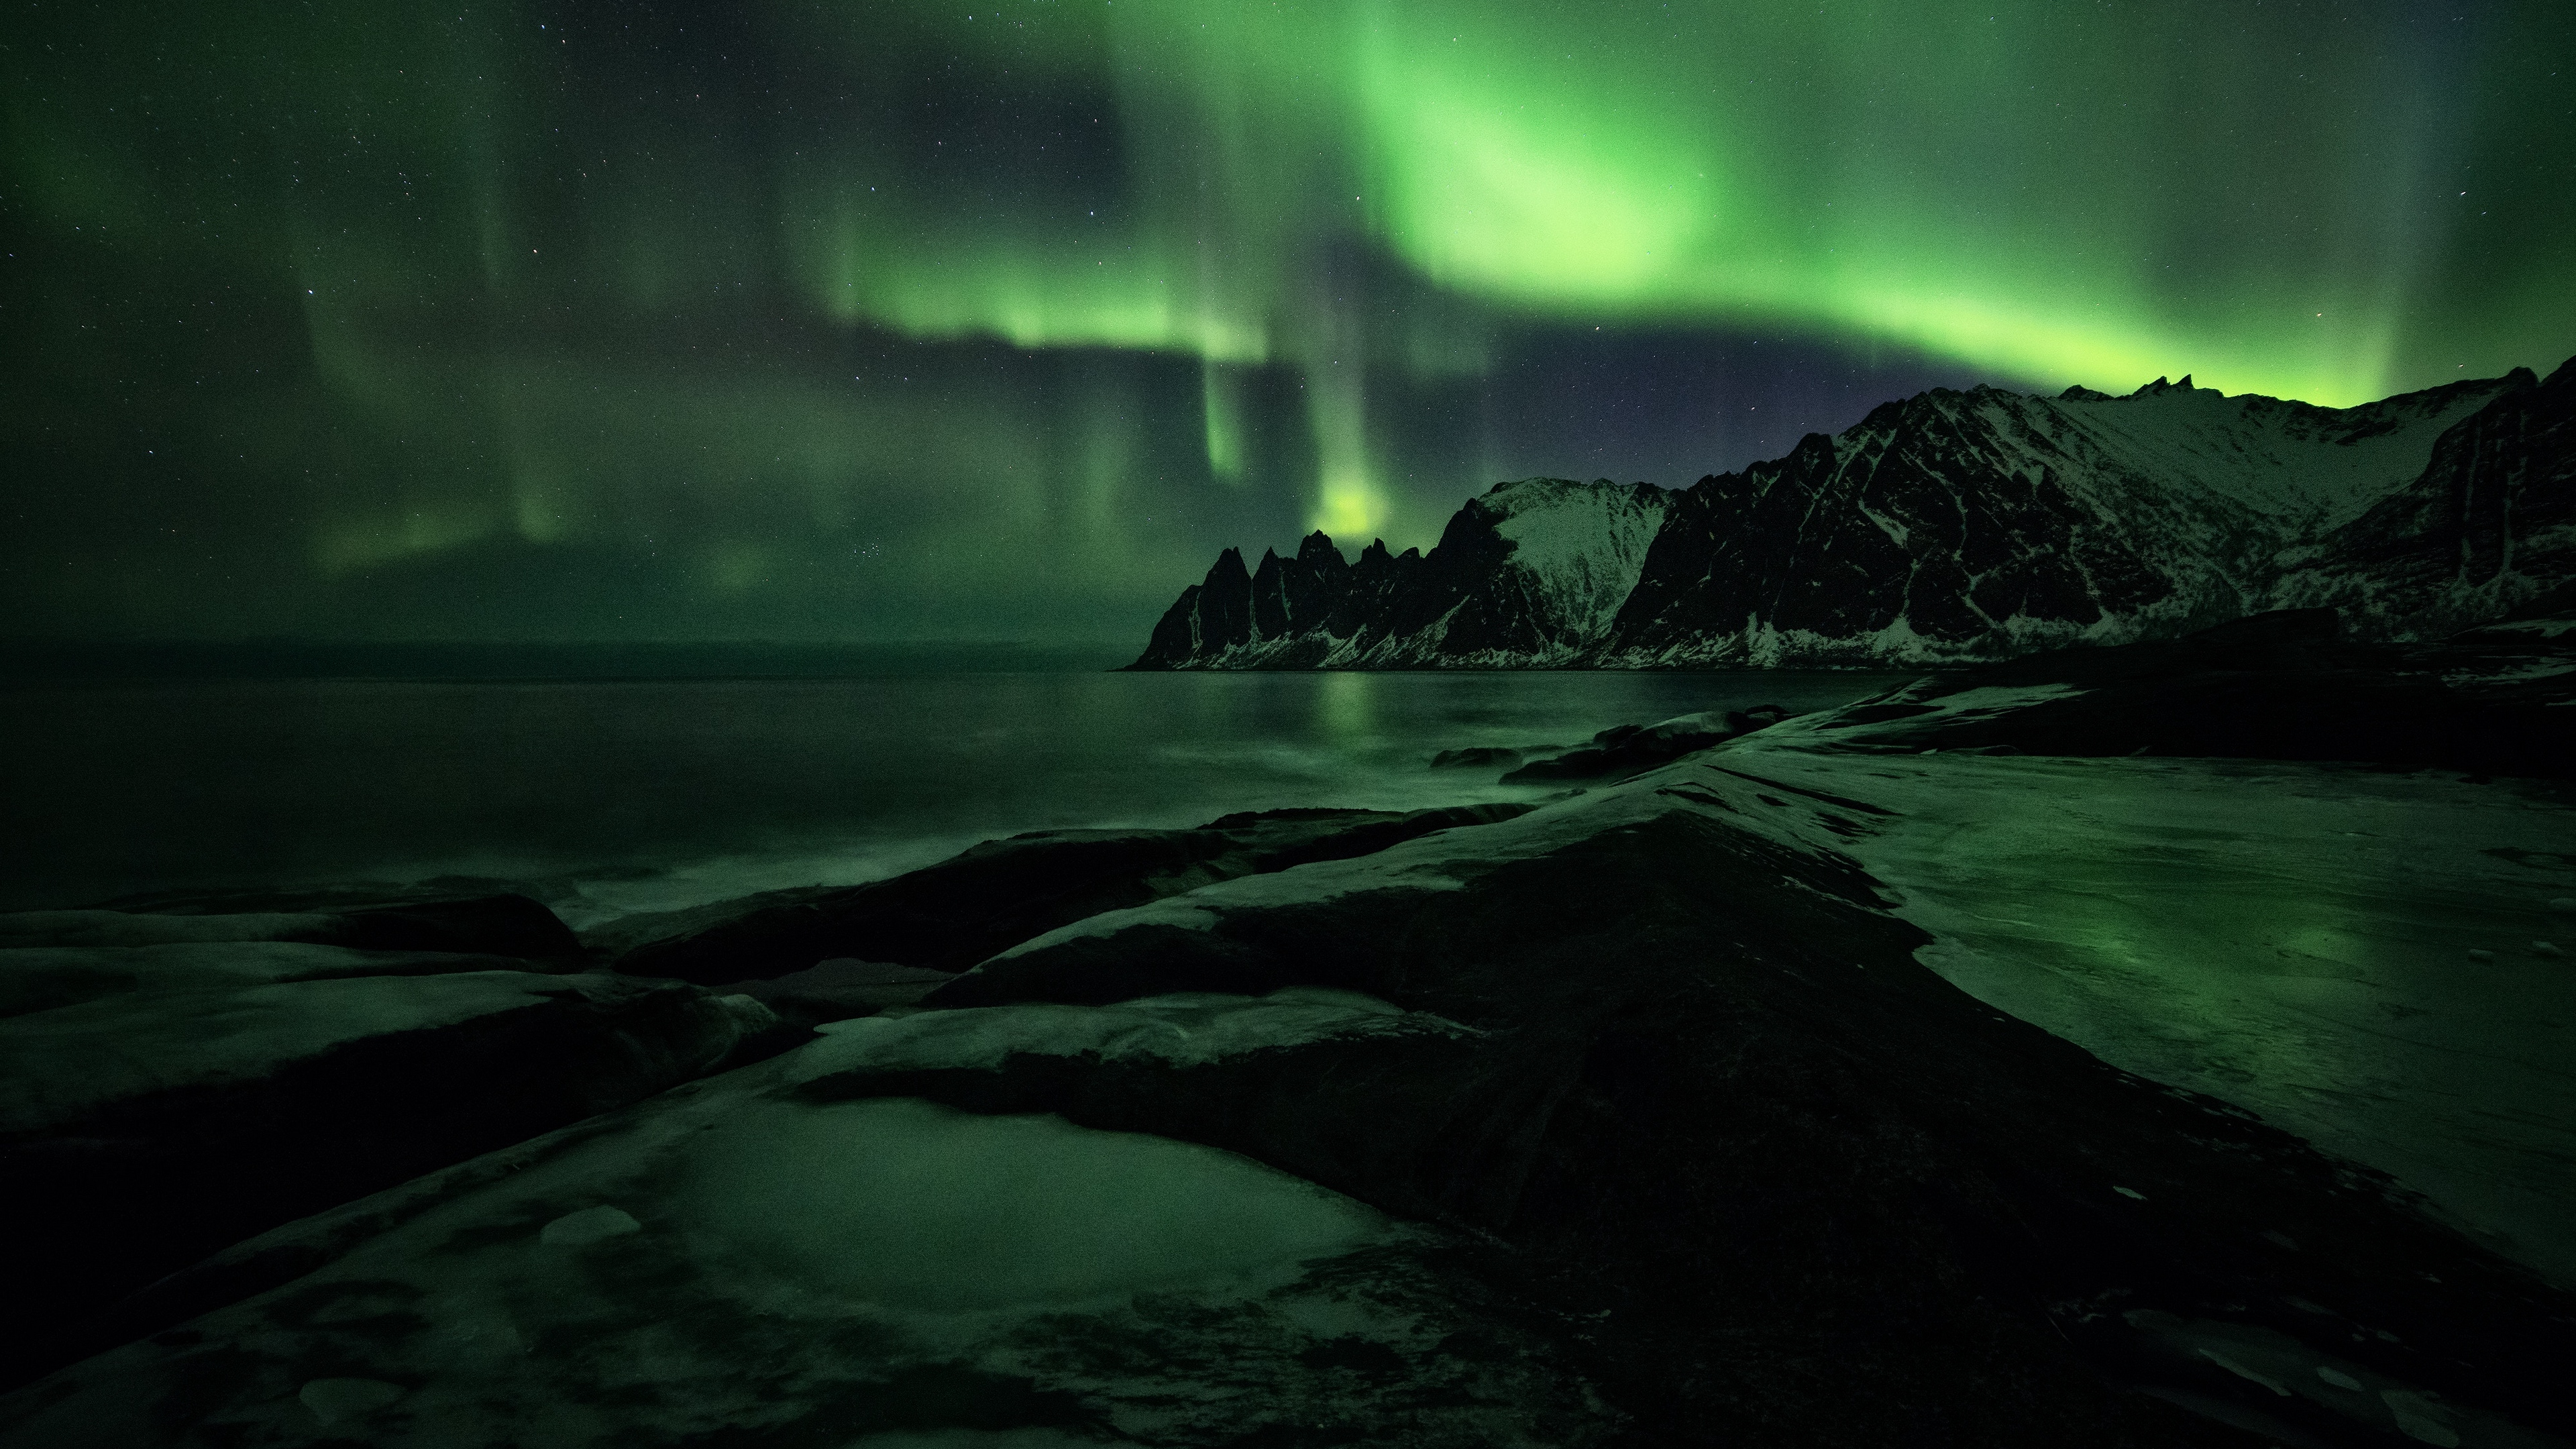 northern lights mountains shore snow 4k 1541115198 - northern lights, mountains, shore, snow 4k - Shore, northern lights, Mountains